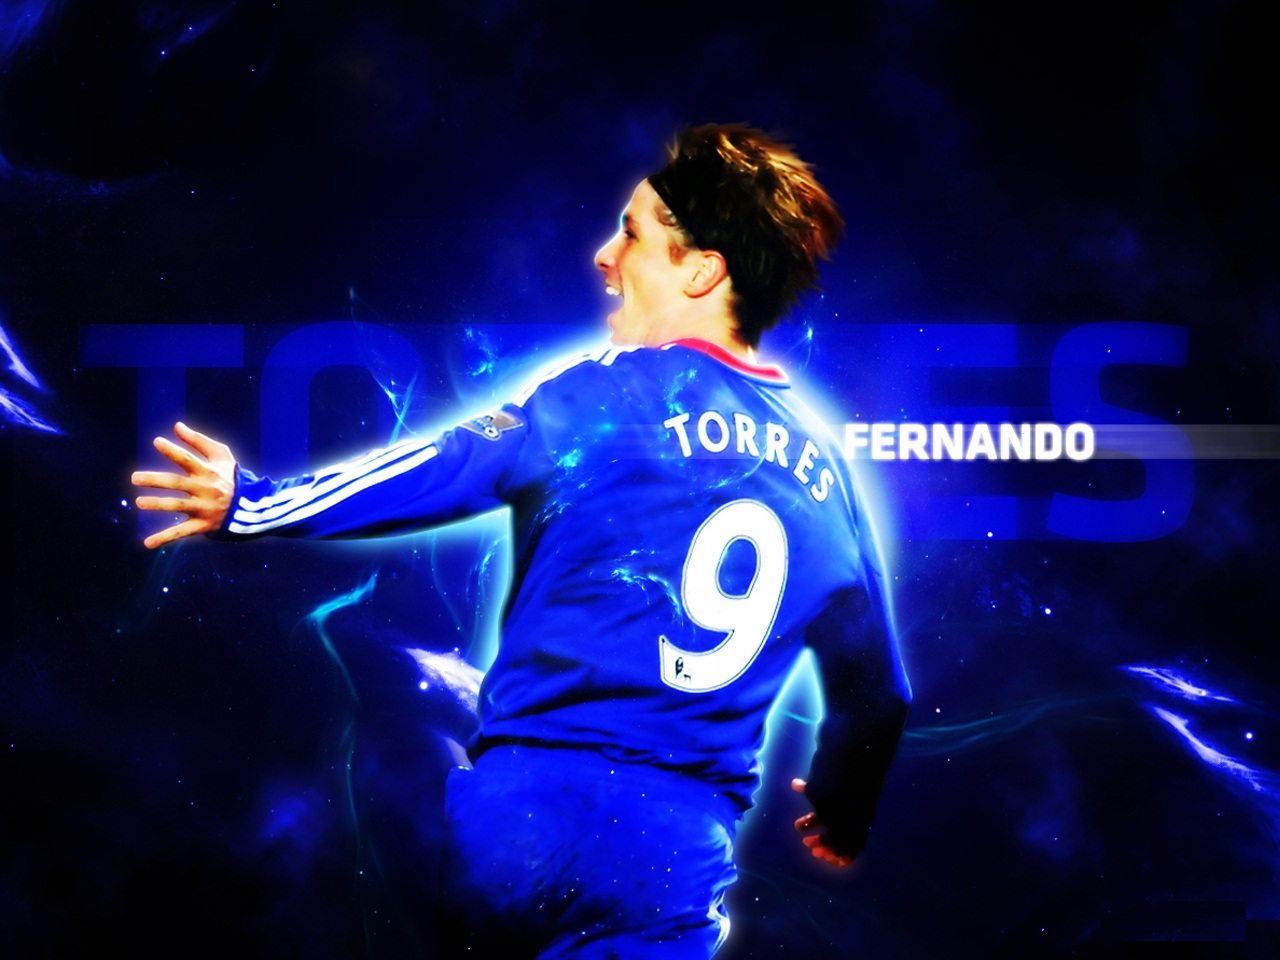 Torres Wallpaper Hd Niftythriftyloveliness picture wallpaper image